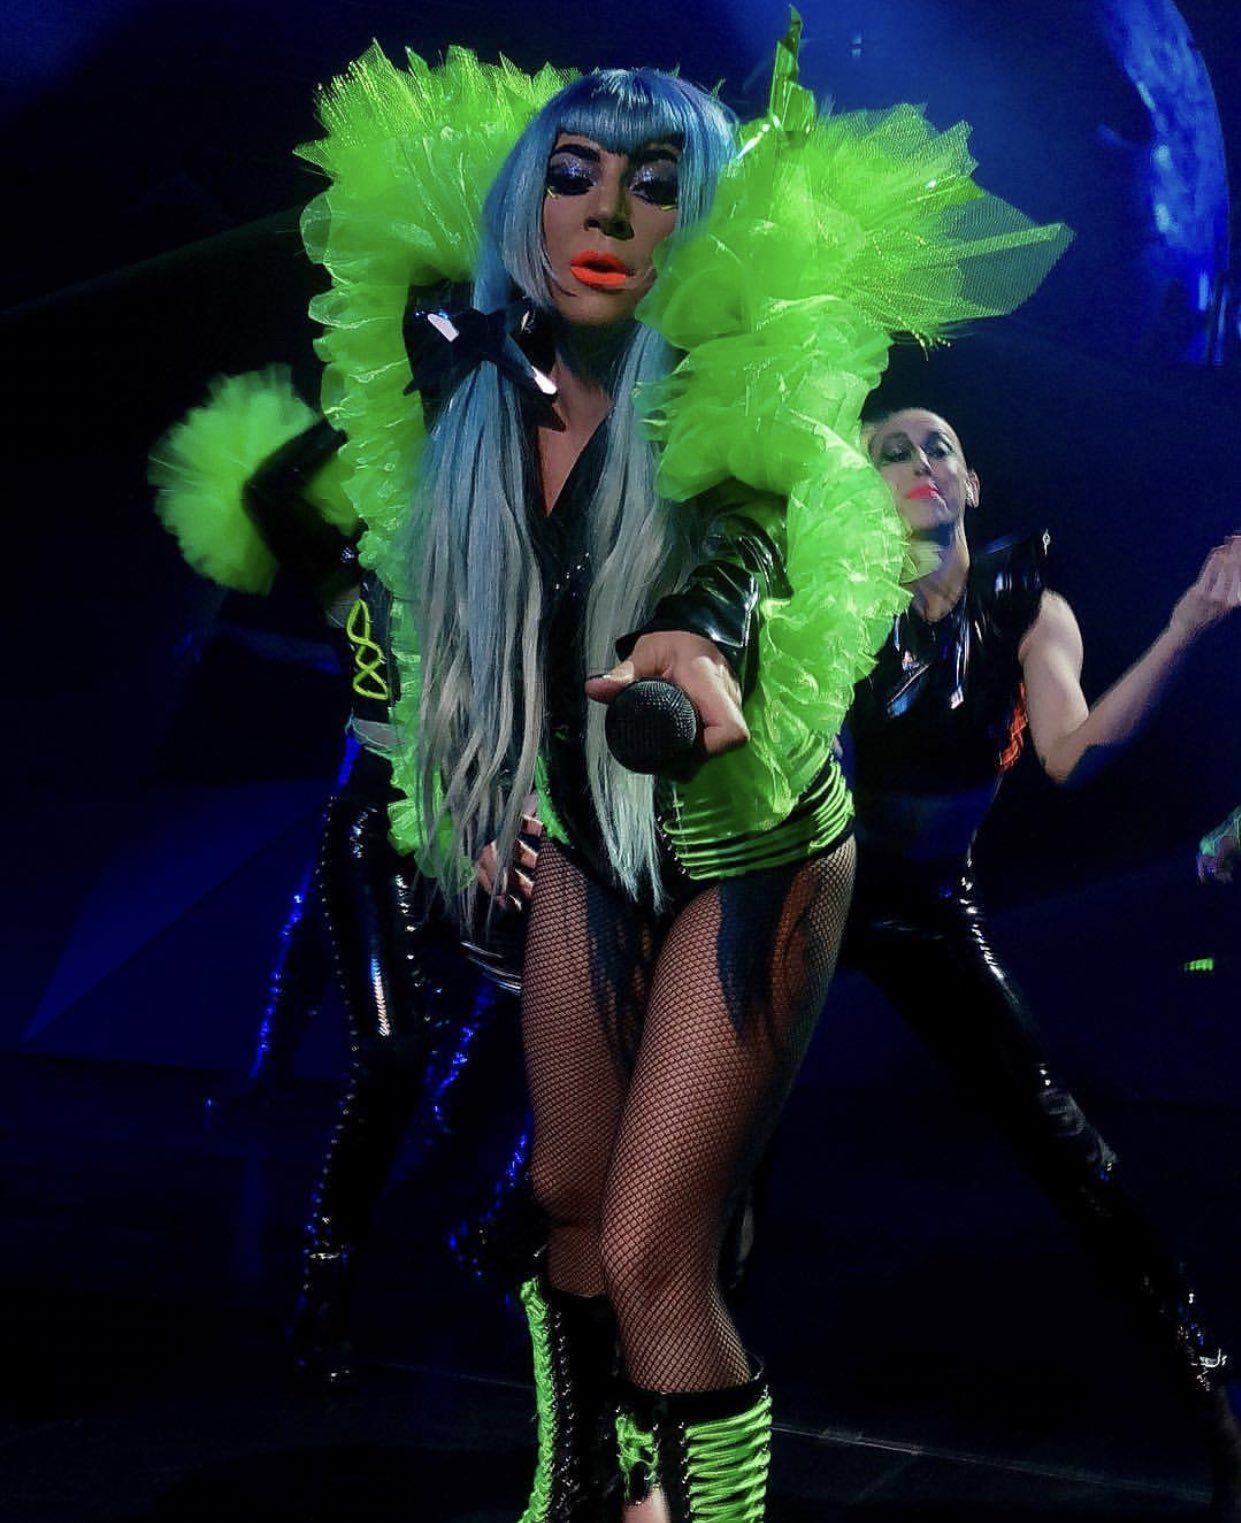 pictures Lady Gaga hot pics. 2018-2019 celebrityes photos leaks!